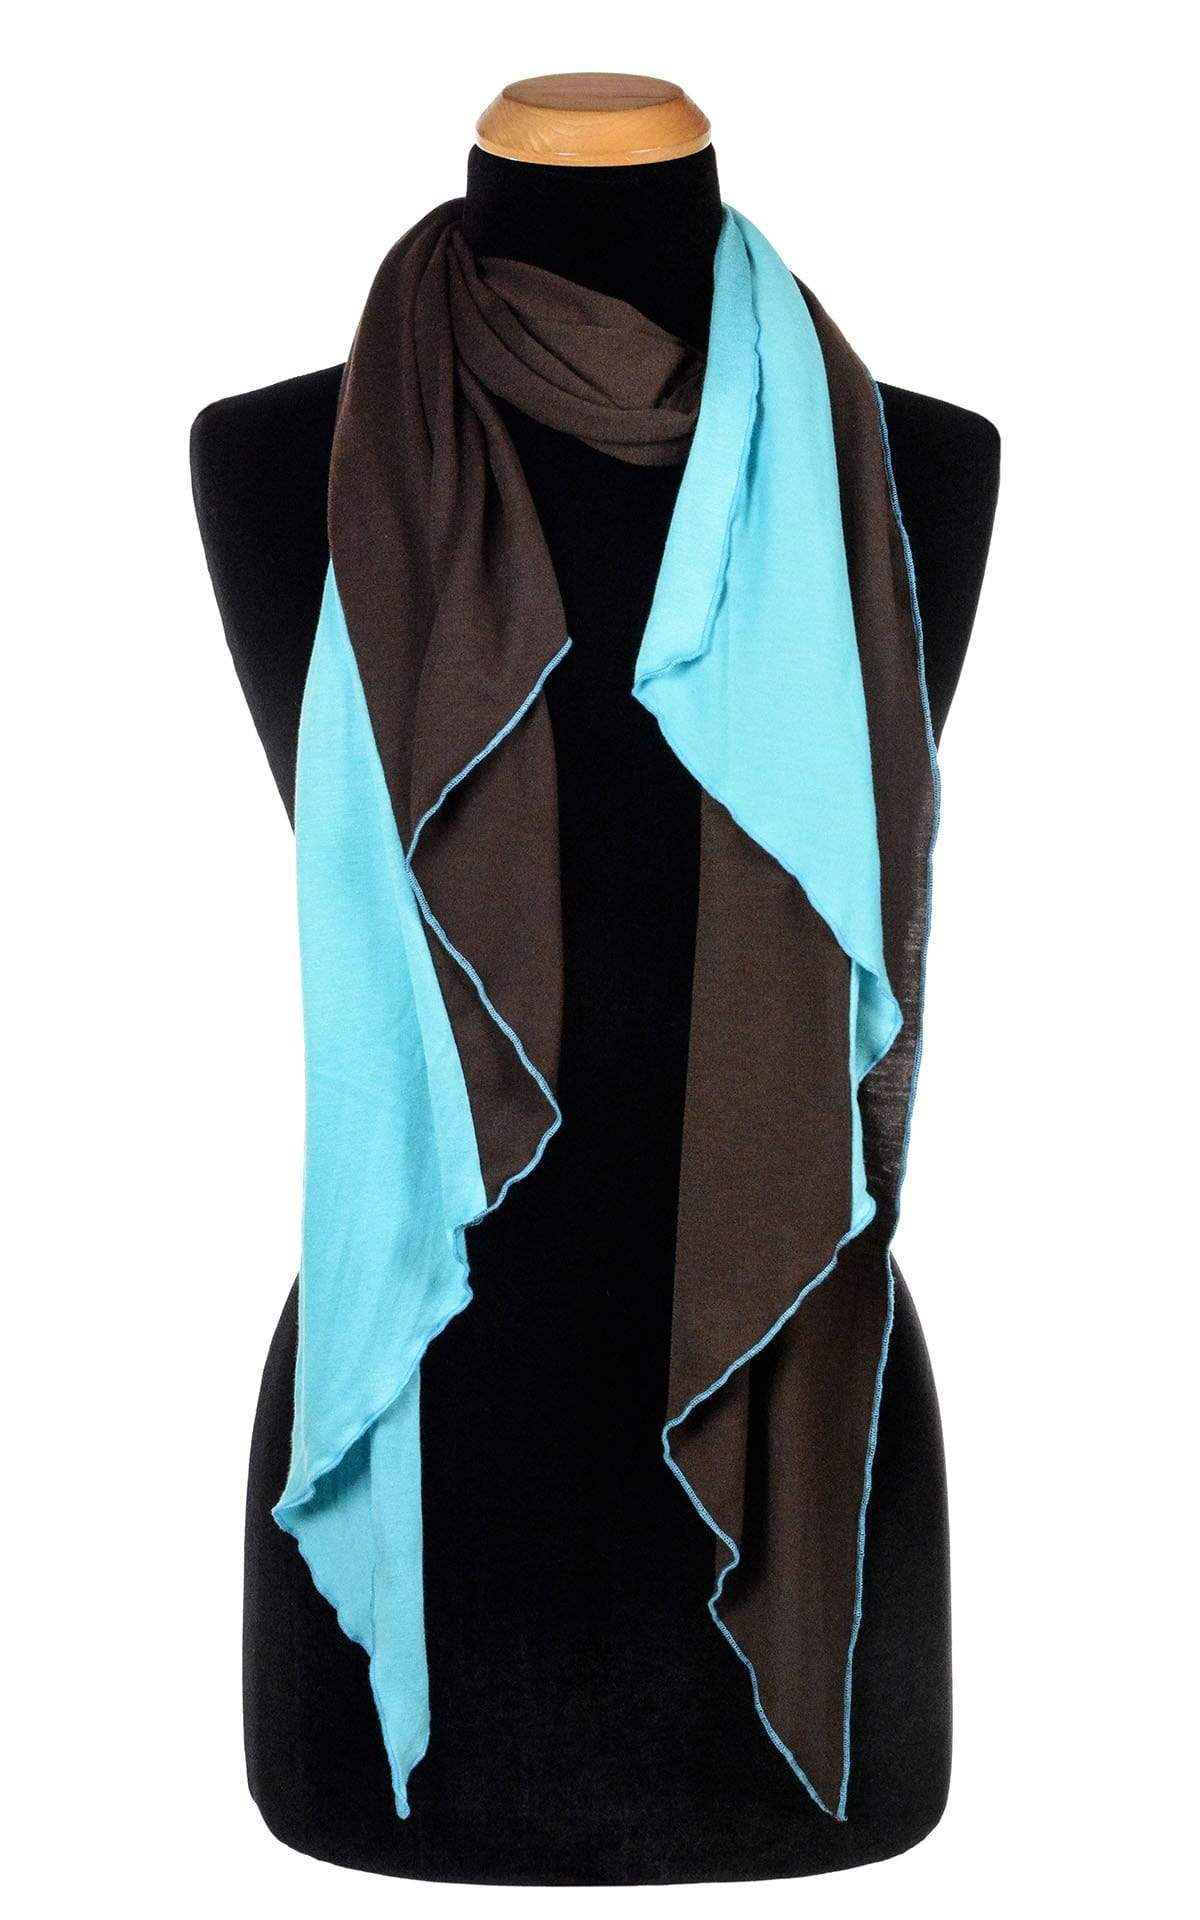 Handkerchief Scarf - Two-Tone, Jersey Knit